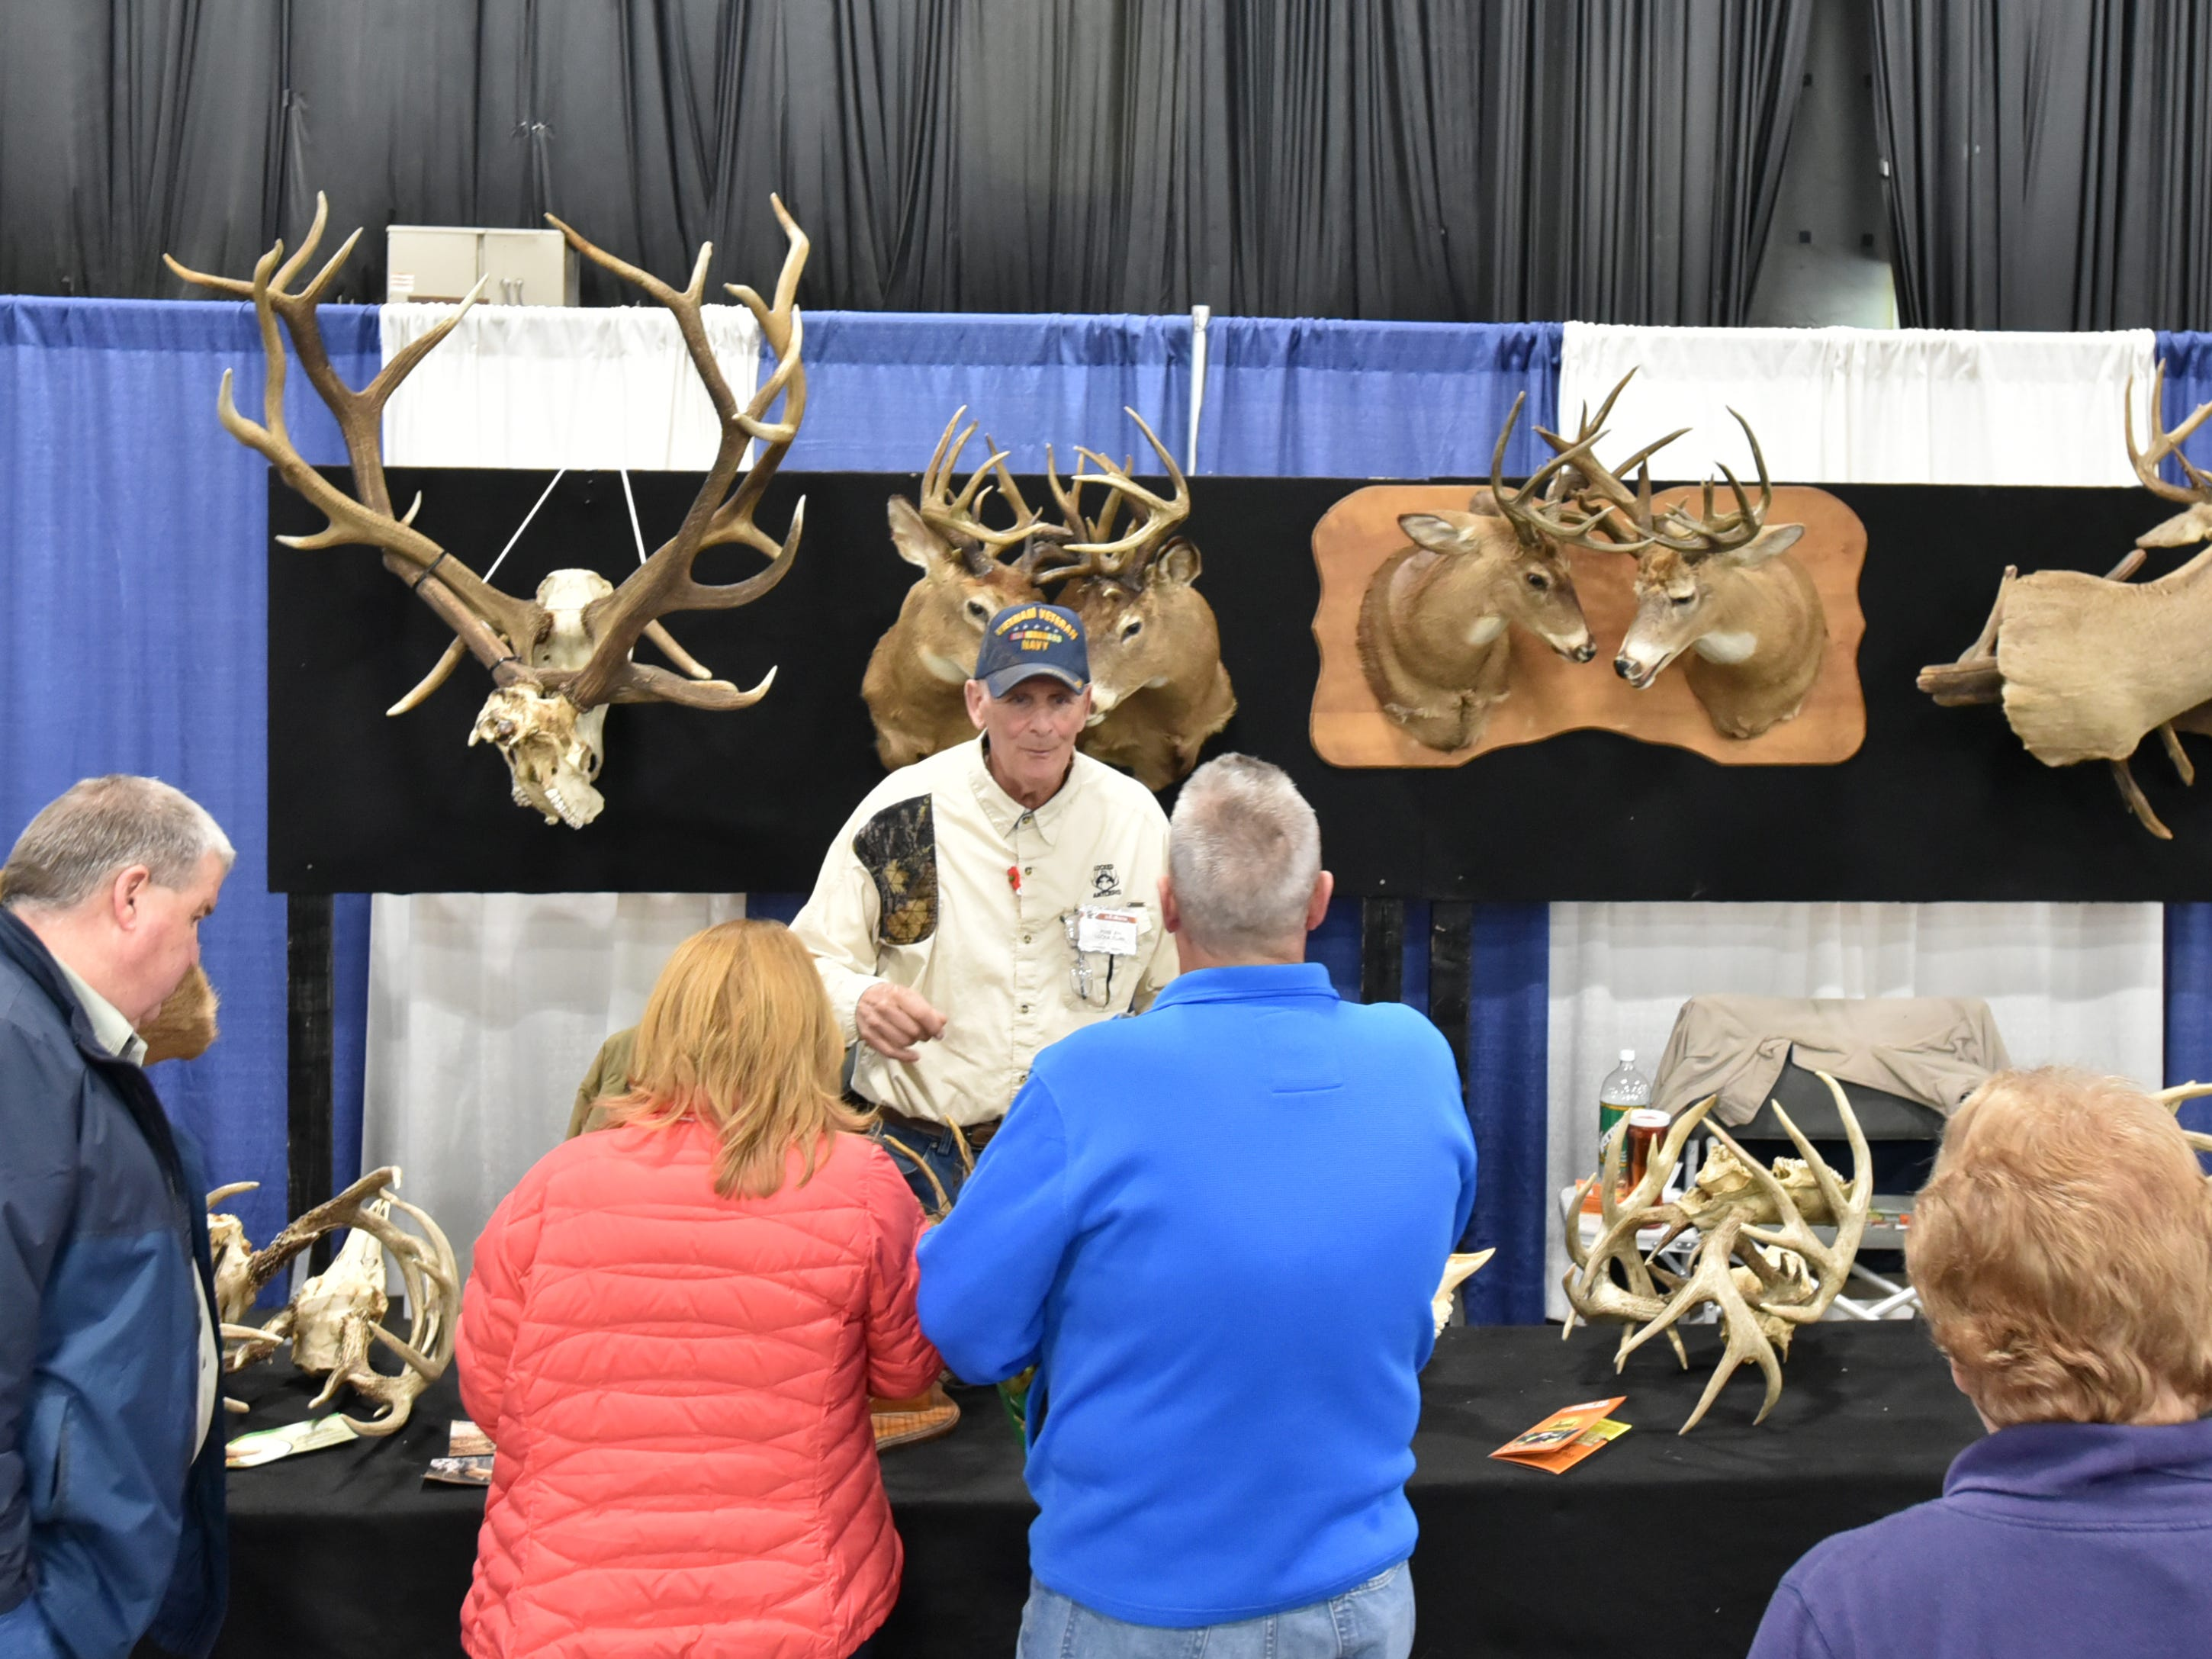 Ron Foss greets visitors to his display at the Outdoorama.